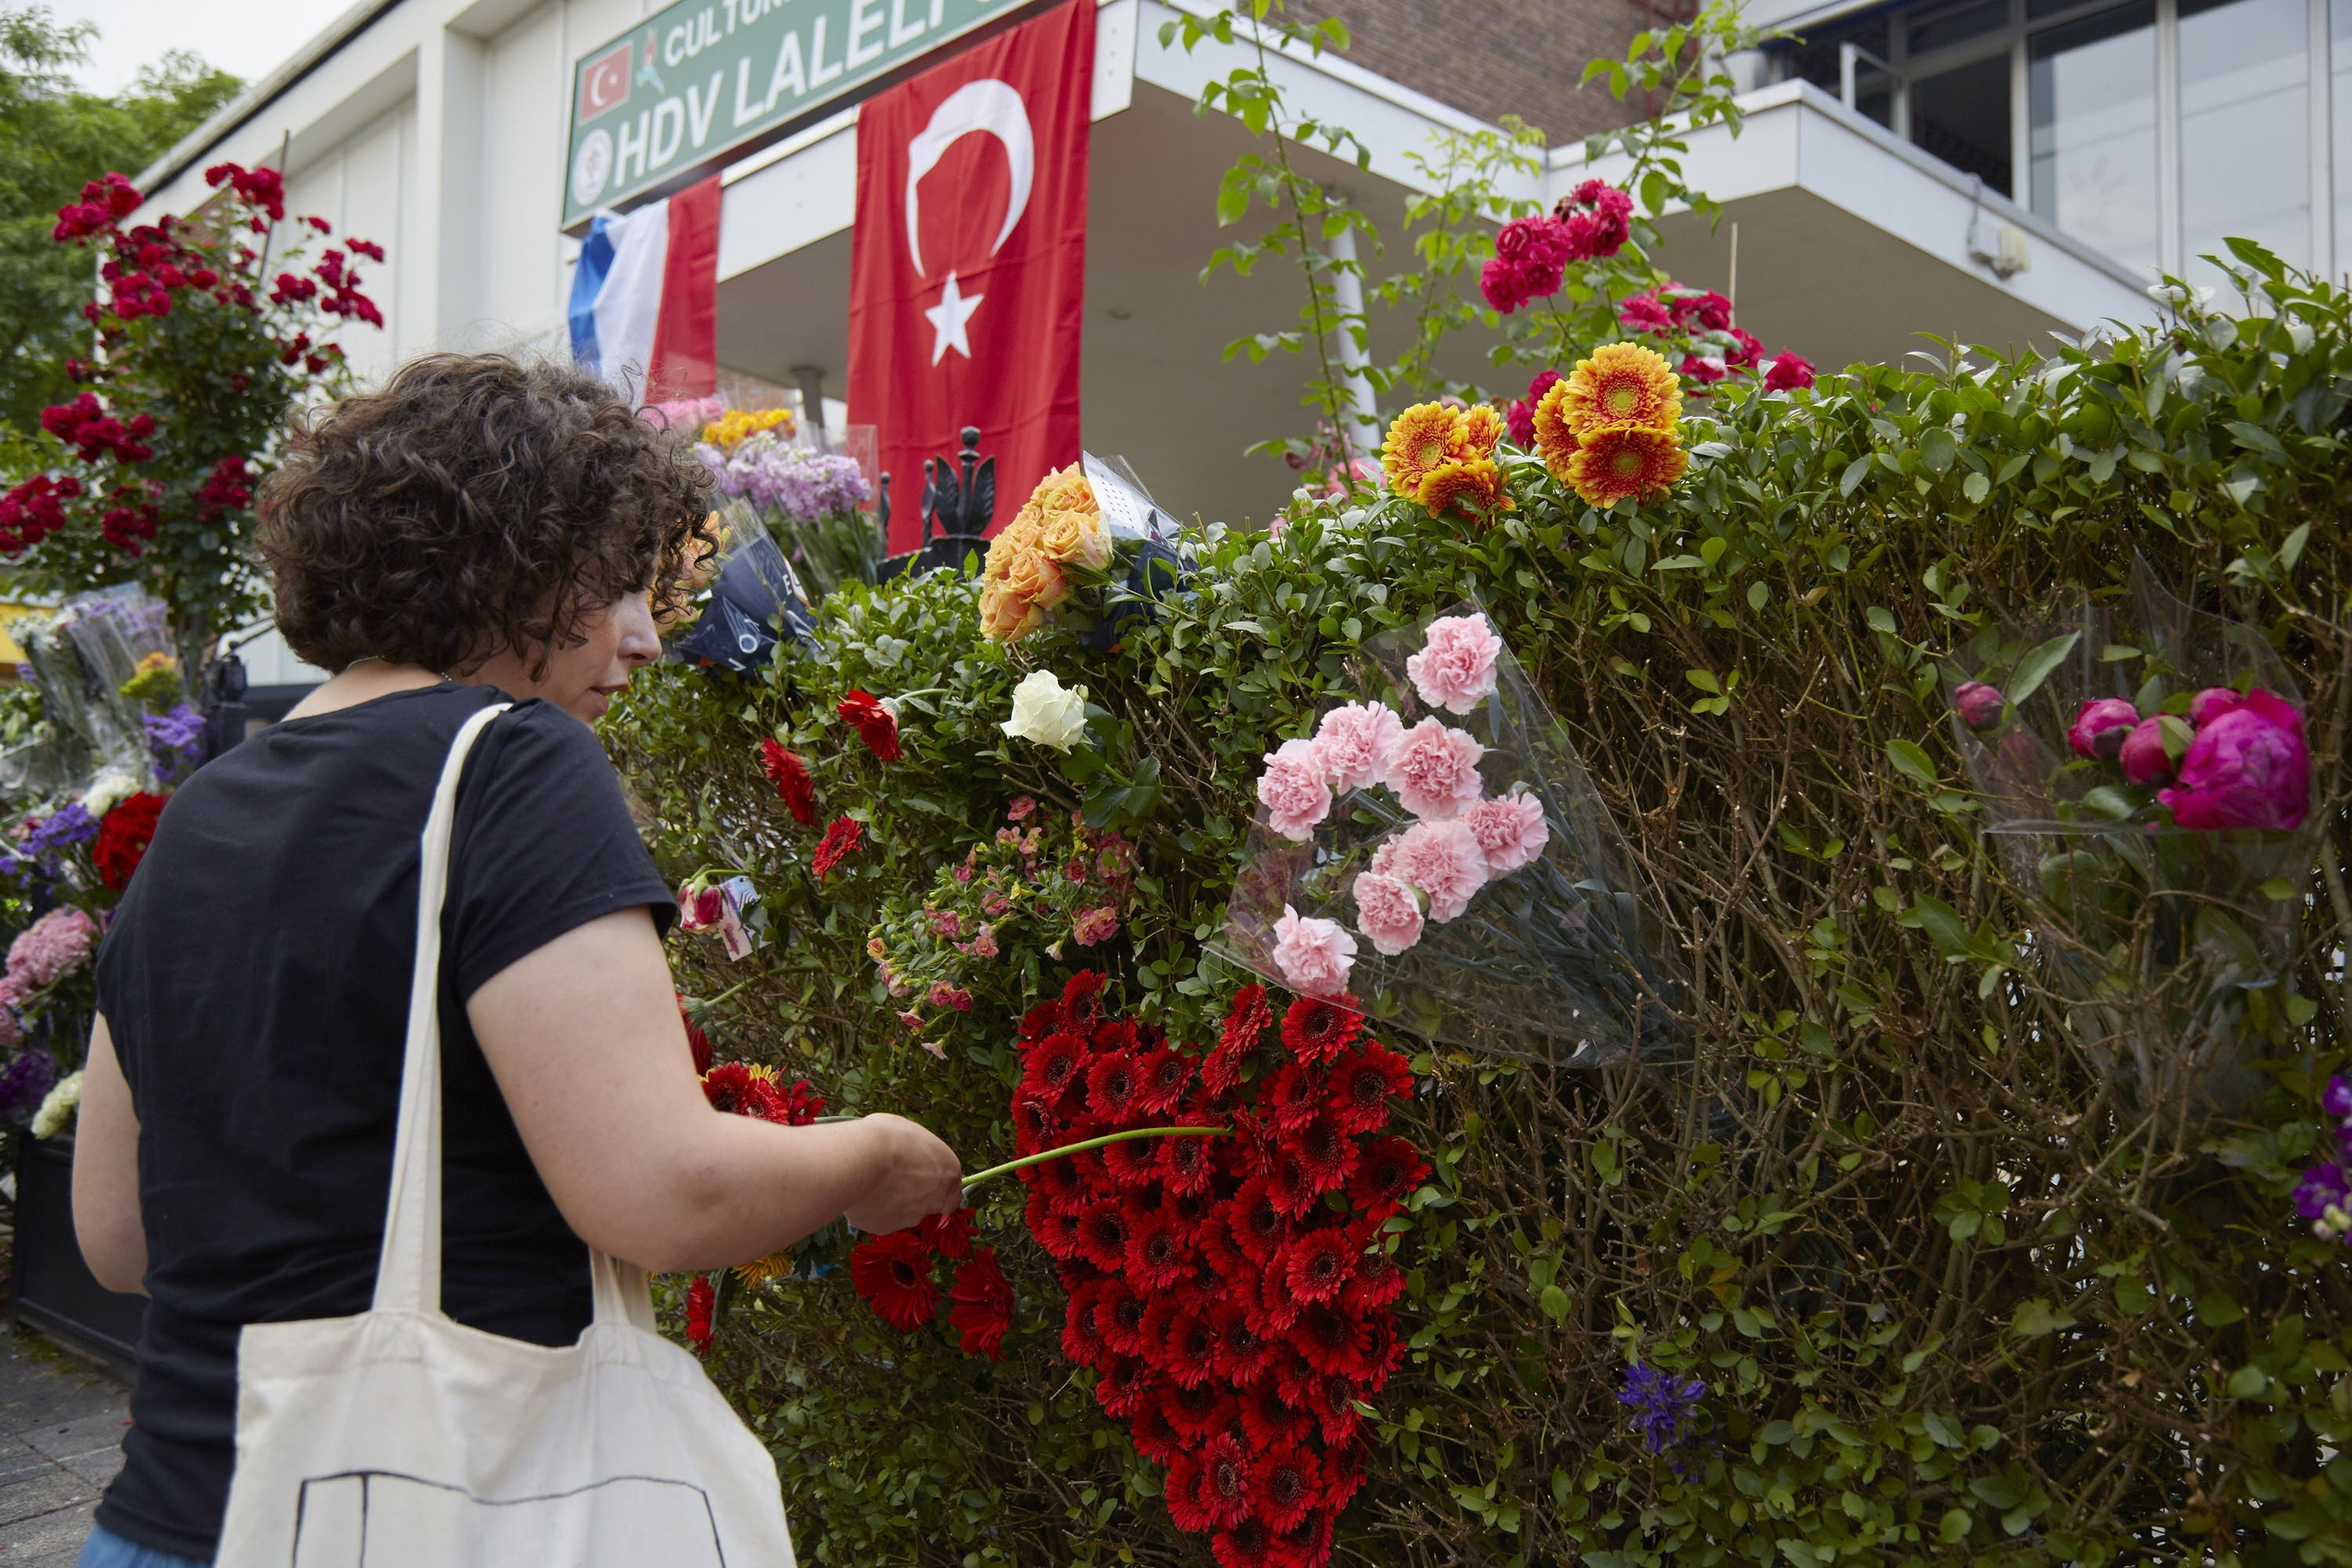 A woman makes a heart with flowers outside the Laleli Mosque as anti-Islam group Pegida plans to roast pigs on a barbecue outside the mosque during the month of Ramadan has failed, Rotterdam, Netherlands, June 7, 2018. (Getty Images)